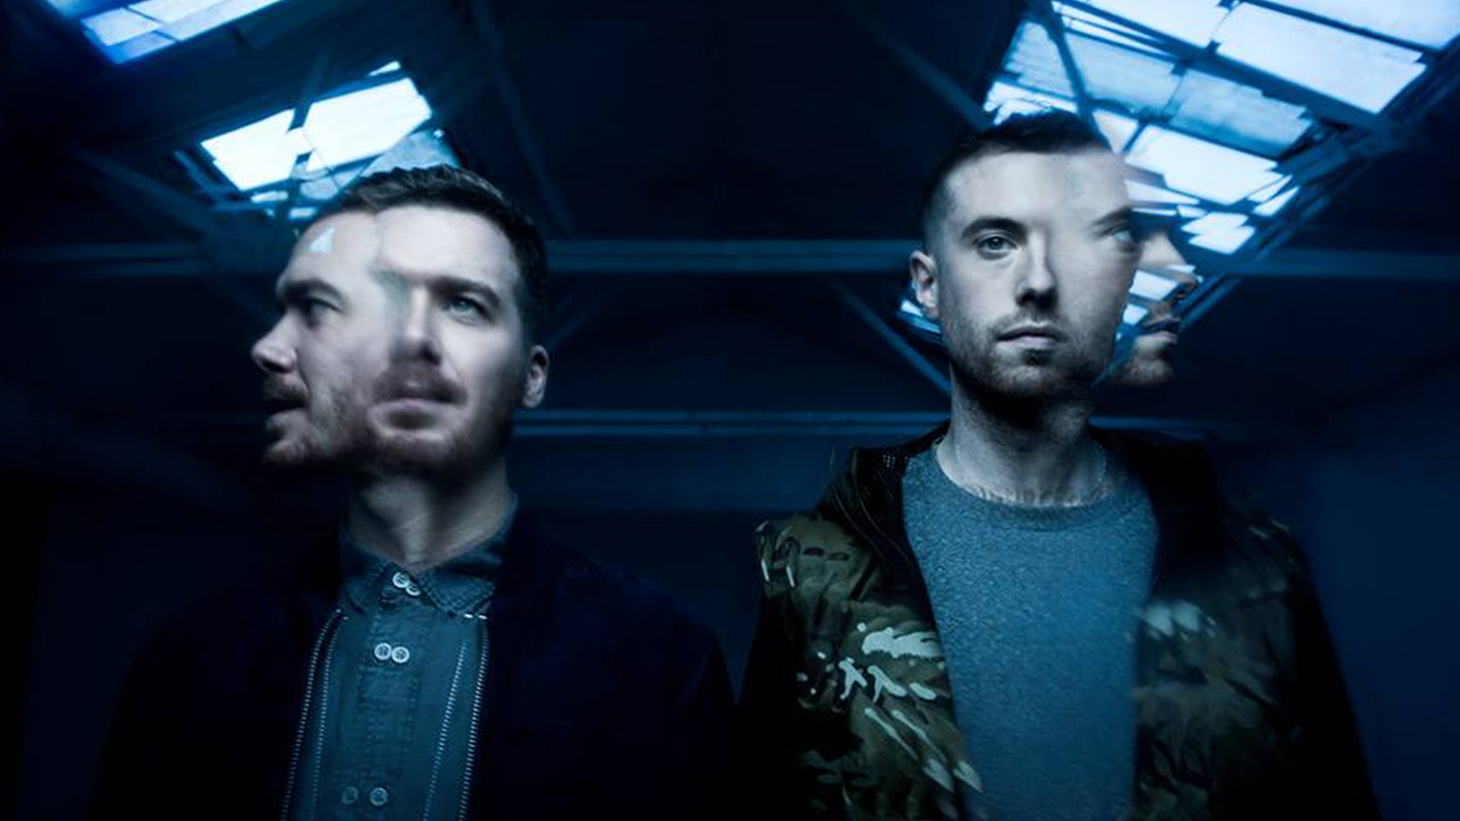 UK house duo Gorgon City joined us to premiere music from their album Kingdom.